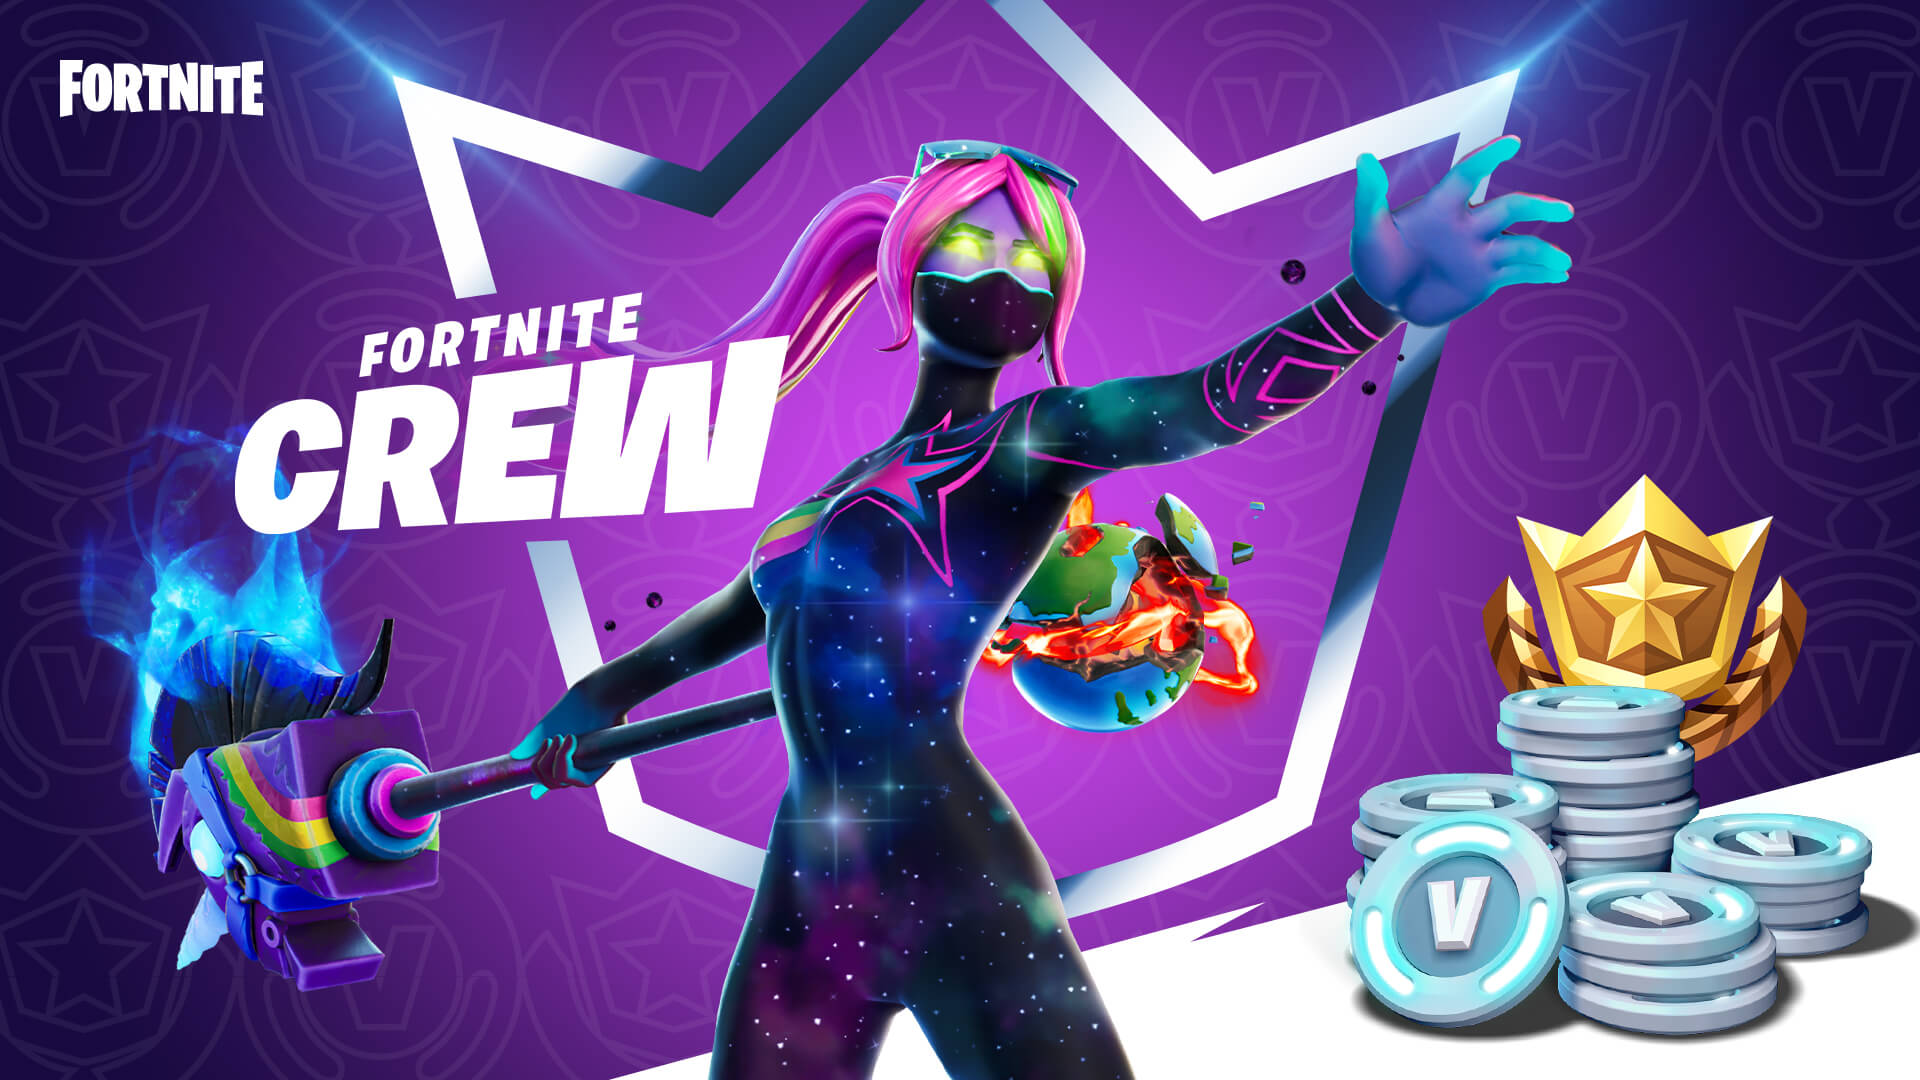 Fortnite Crew image